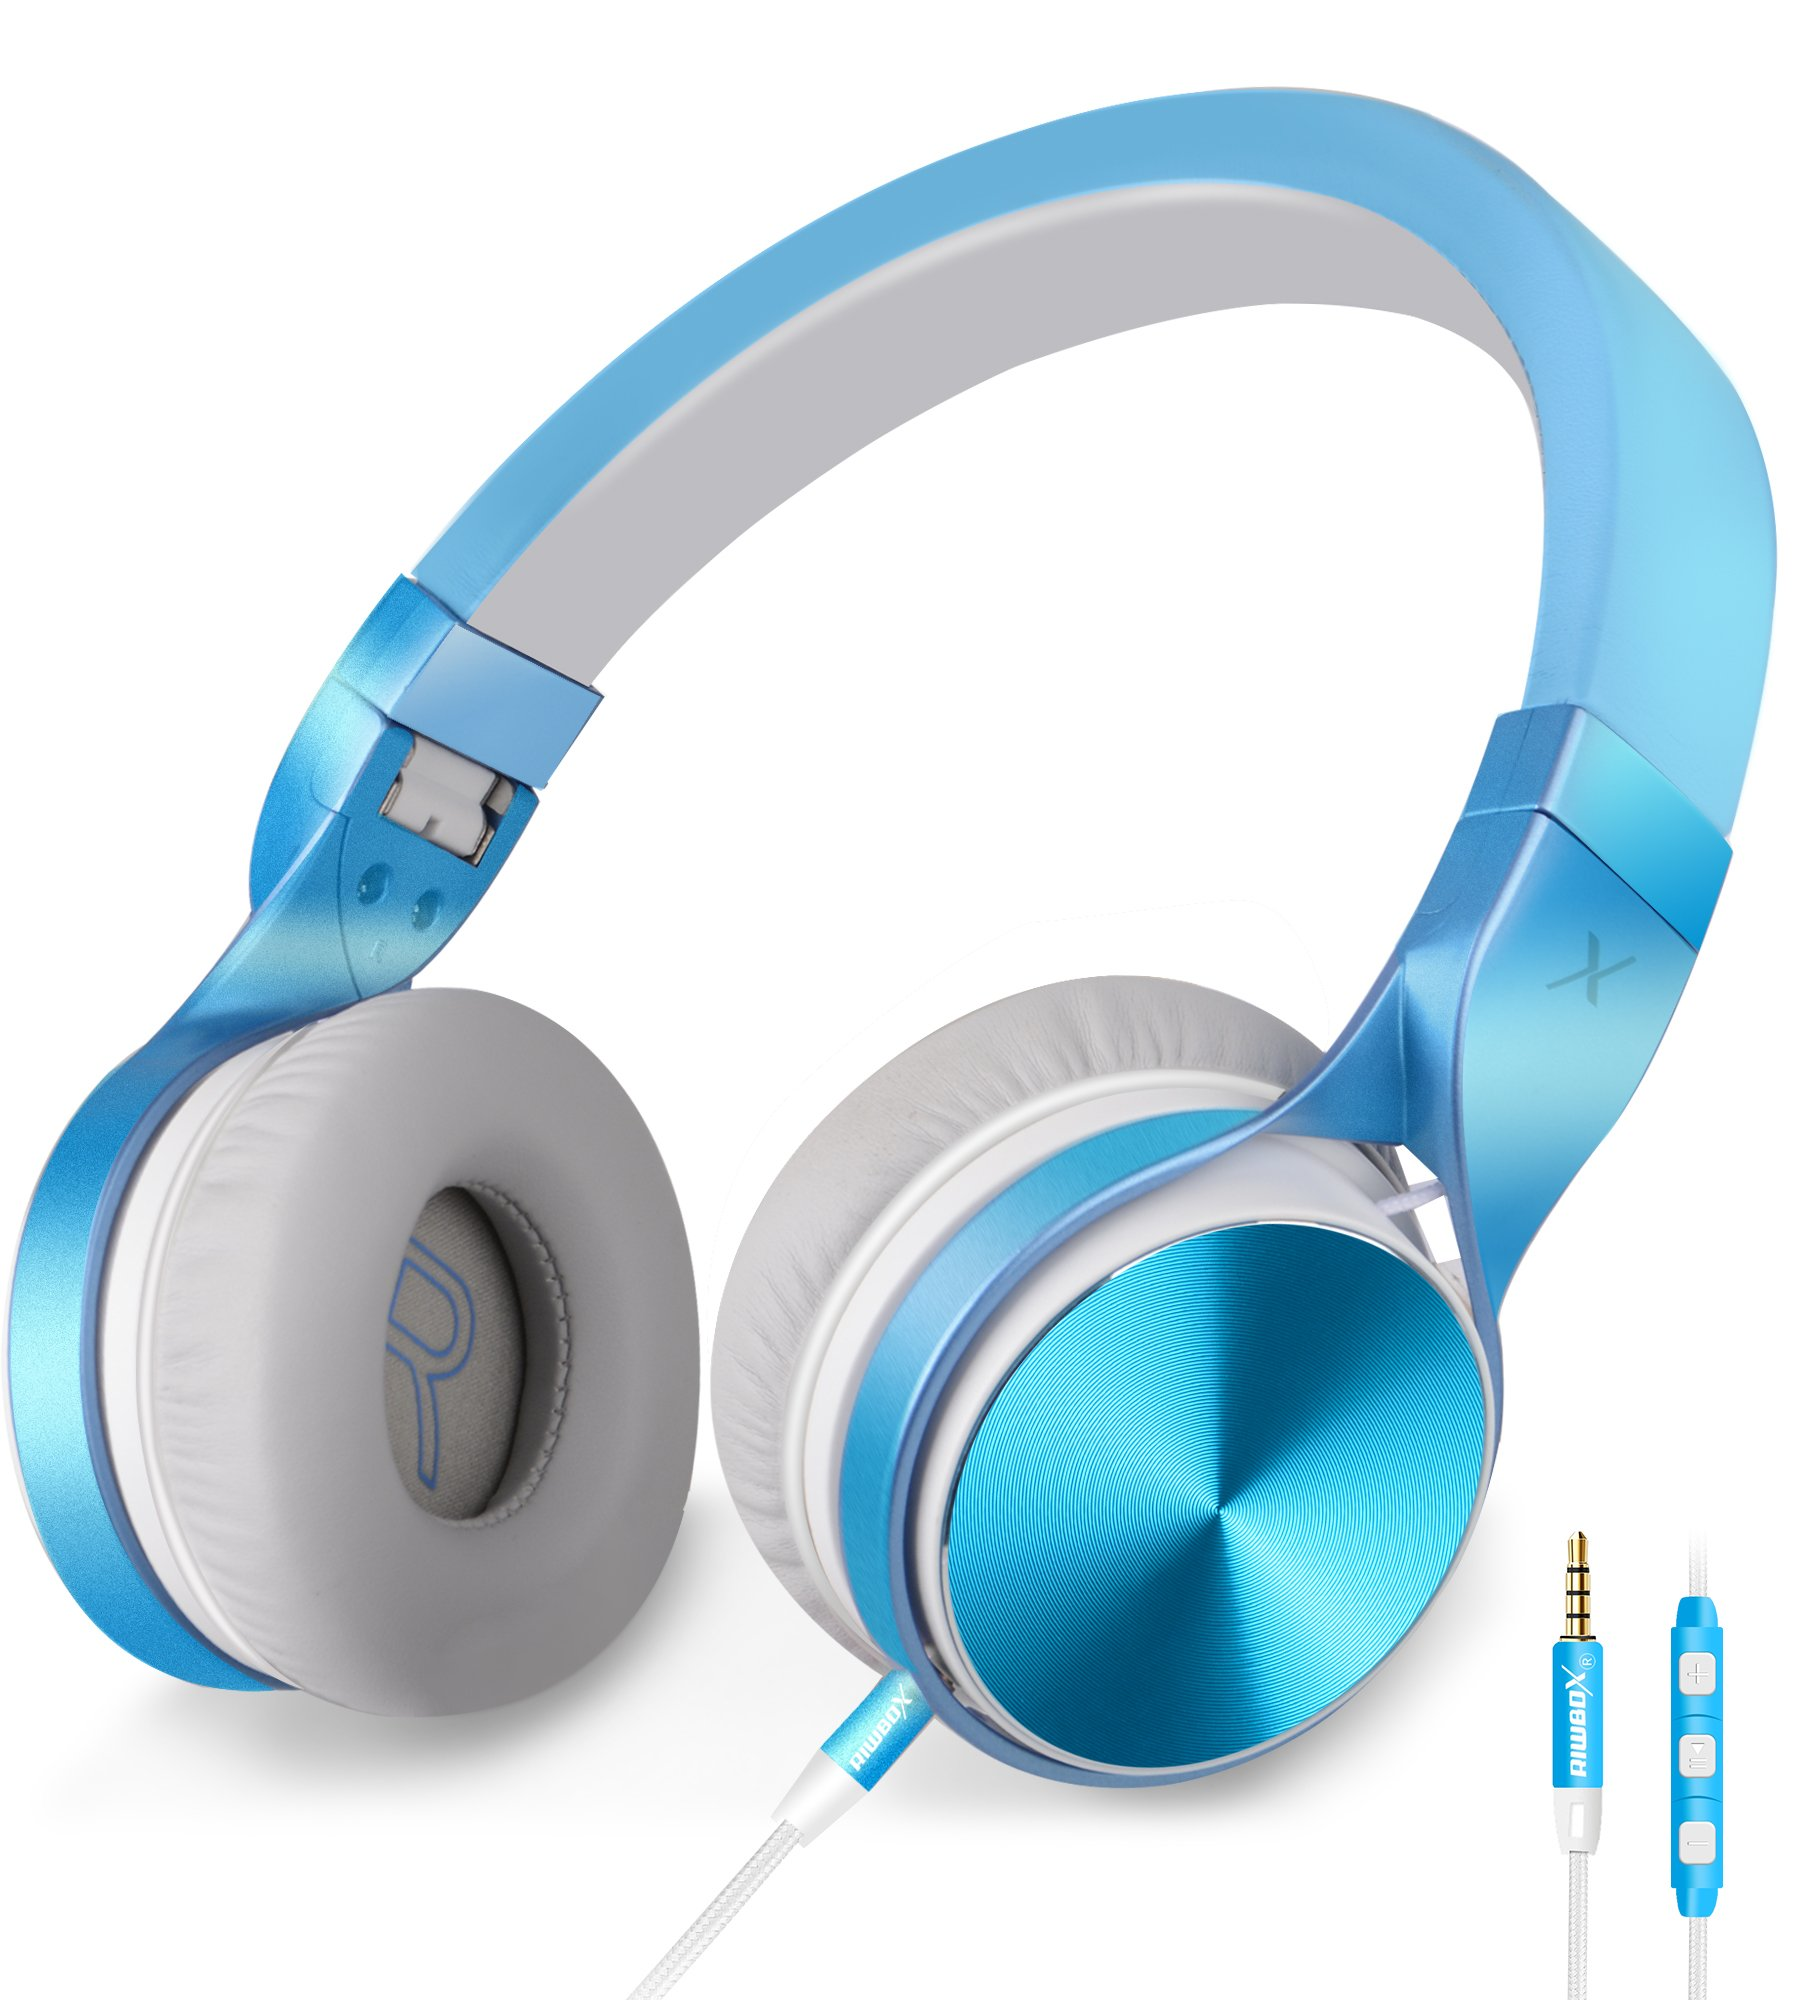 HeadphonesRiwbox-in-5-Headphones-with-Microphone-and-Volume-Control-Folding-Lightweight-Headset-for-iPhone-Cellphones-Tablets-Smartphones-Laptop-Computer-PC-Mp34